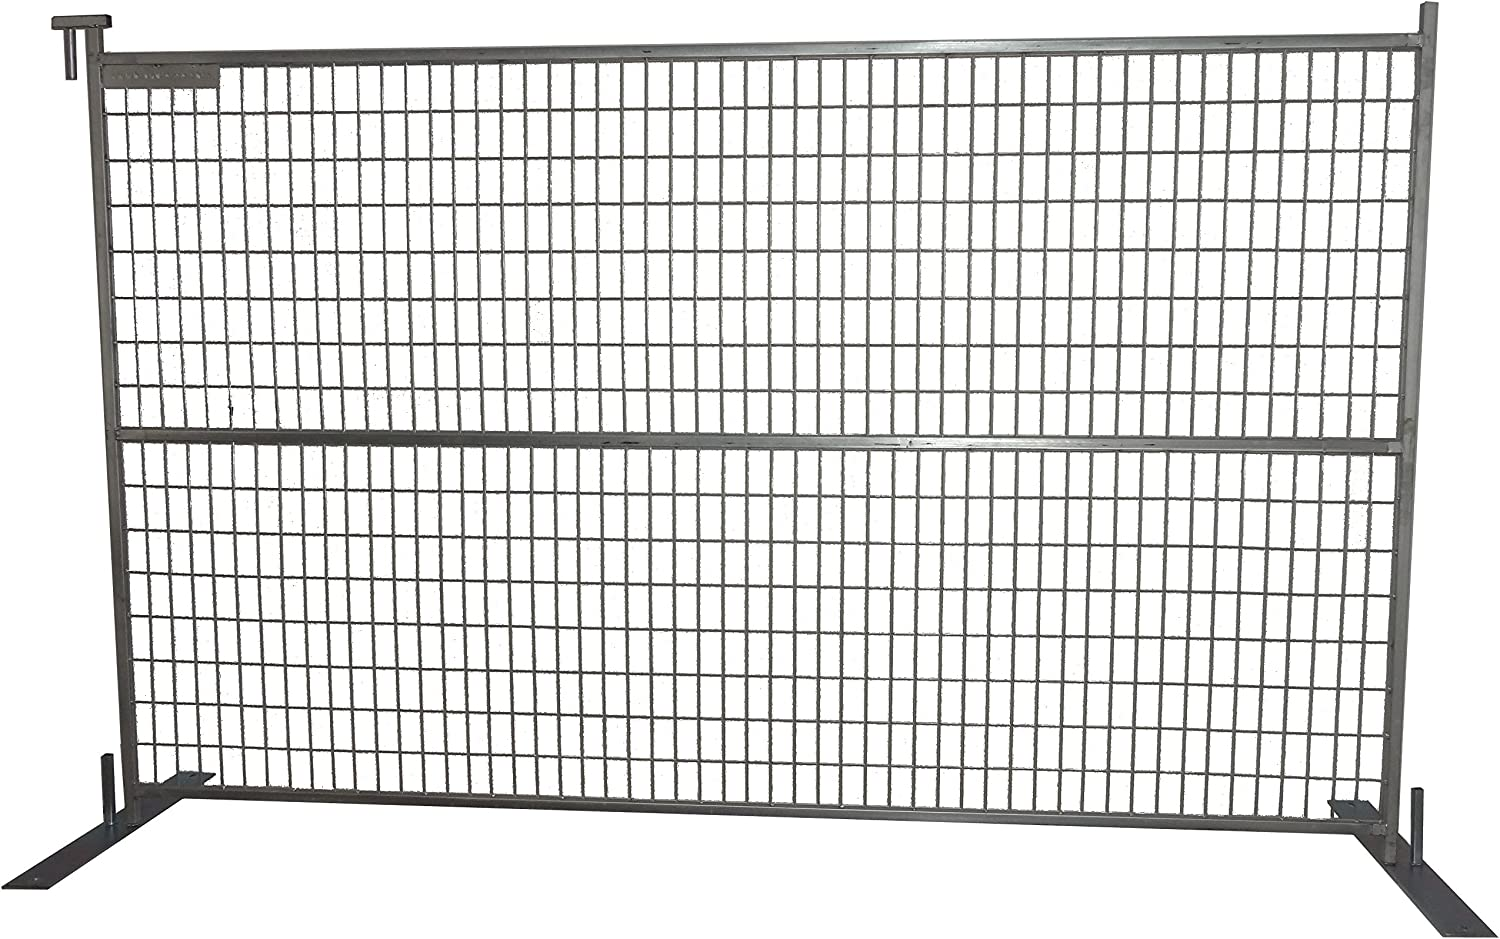 Broadfence Select Temporary Construction Fence Panels Welded Steel Wire Mesh Portable Gate Safety Chain Link Amazon Com